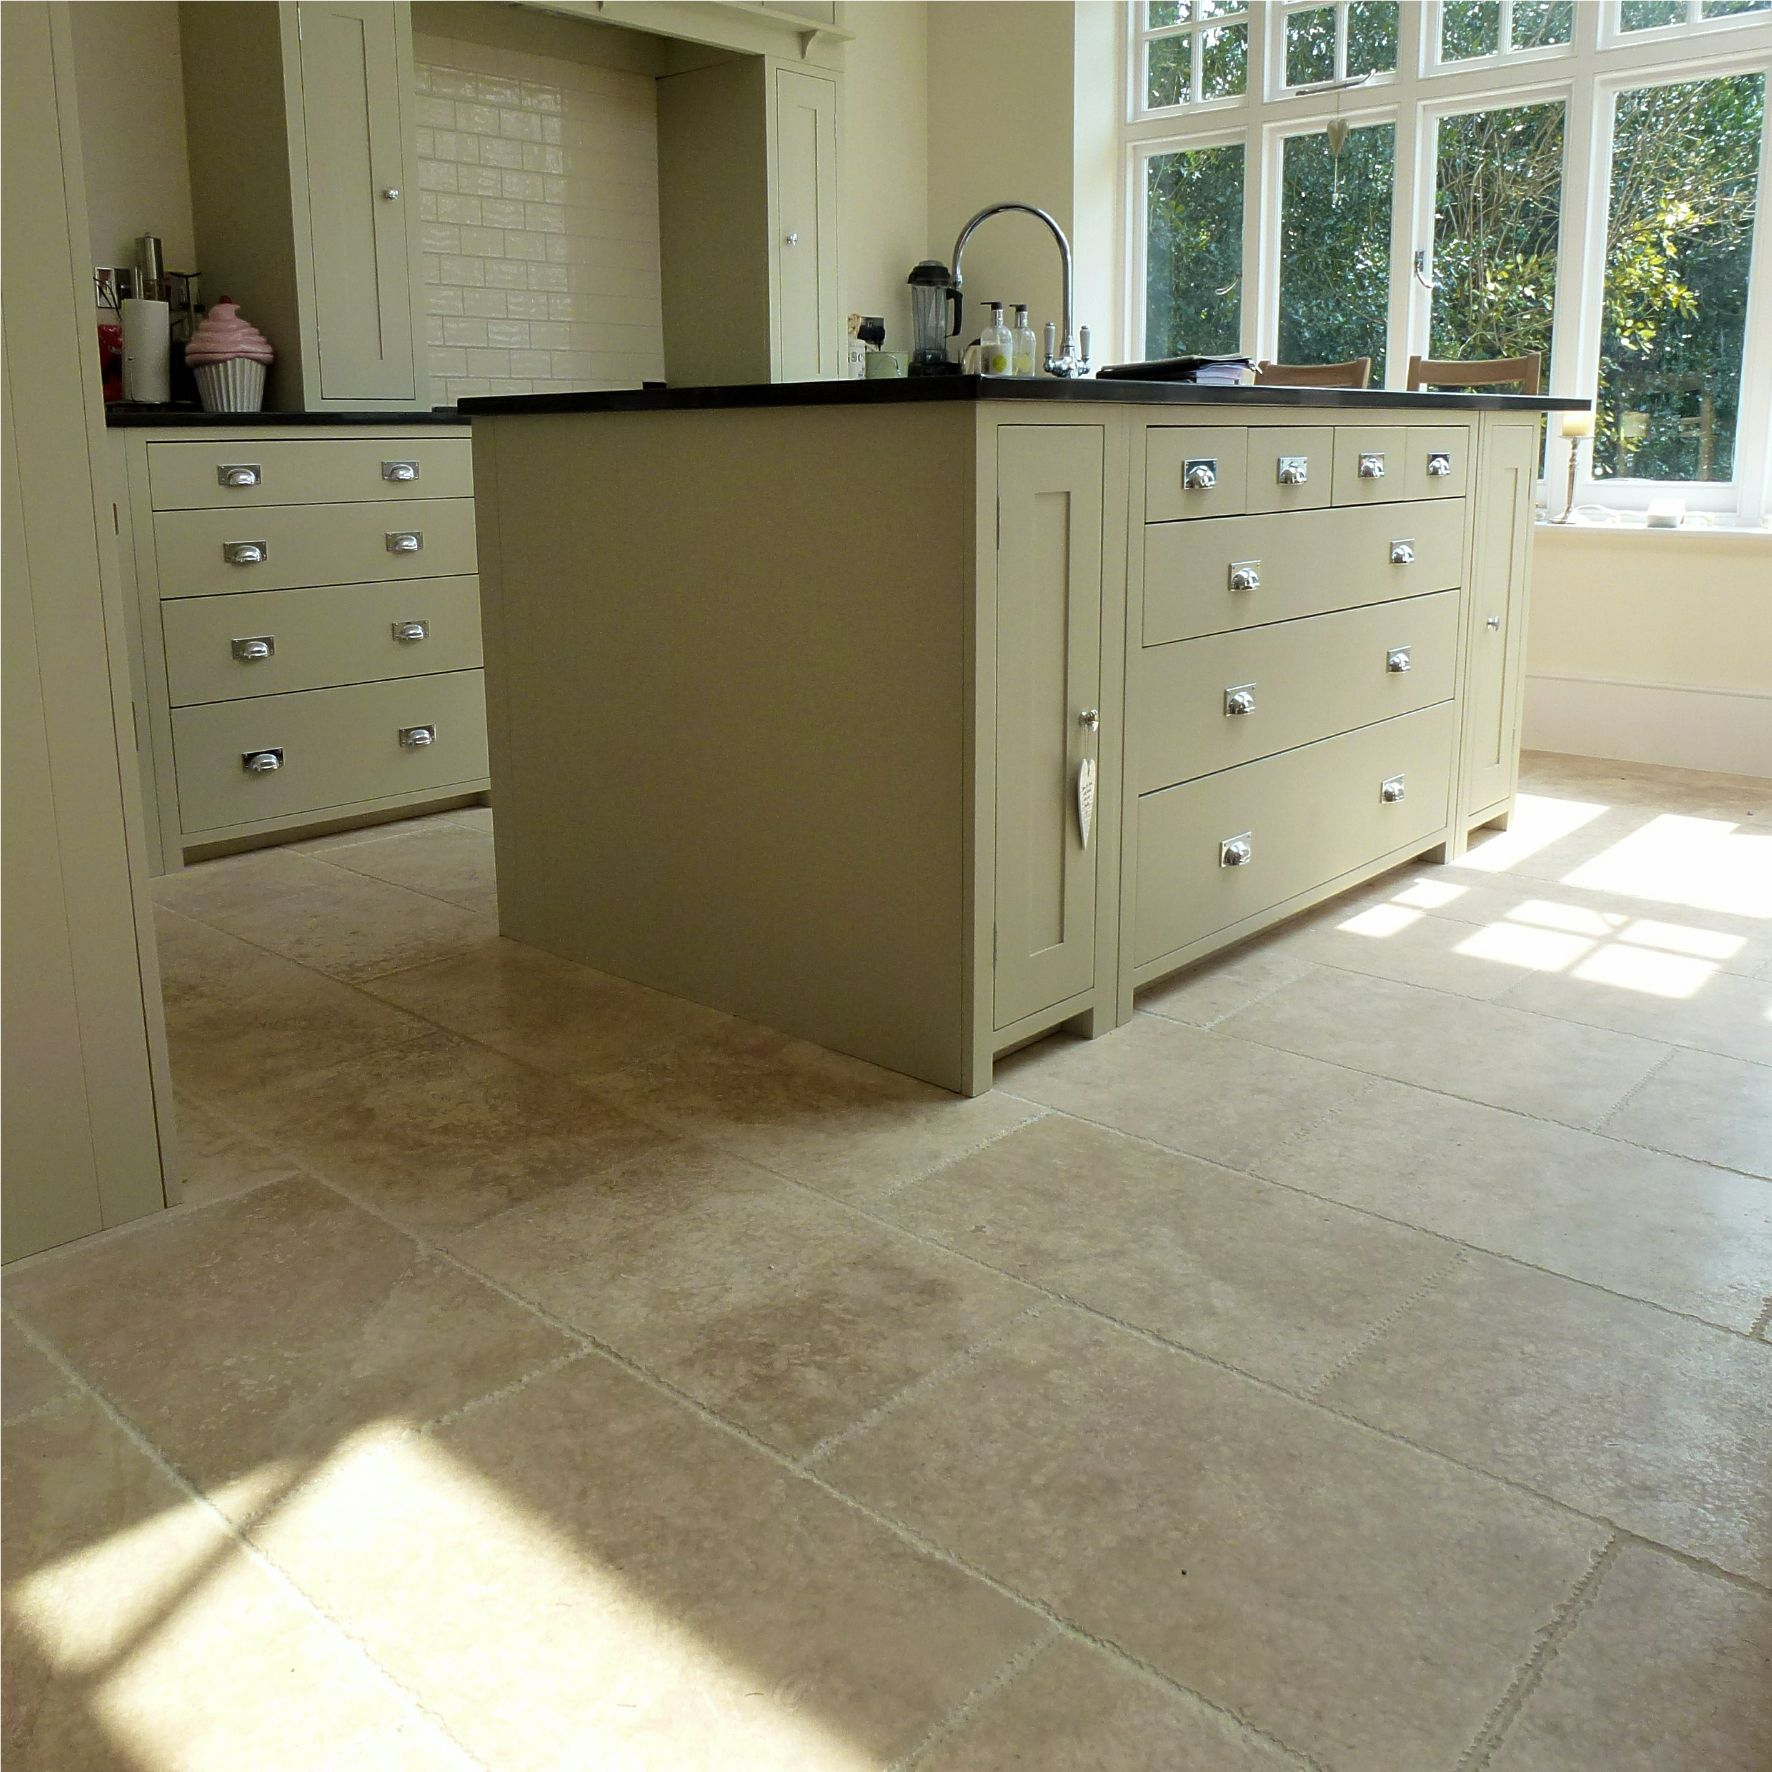 Example Tile Installations Tile Fitting Examples Marble Flooring Design Tile Installation Tiles Uk